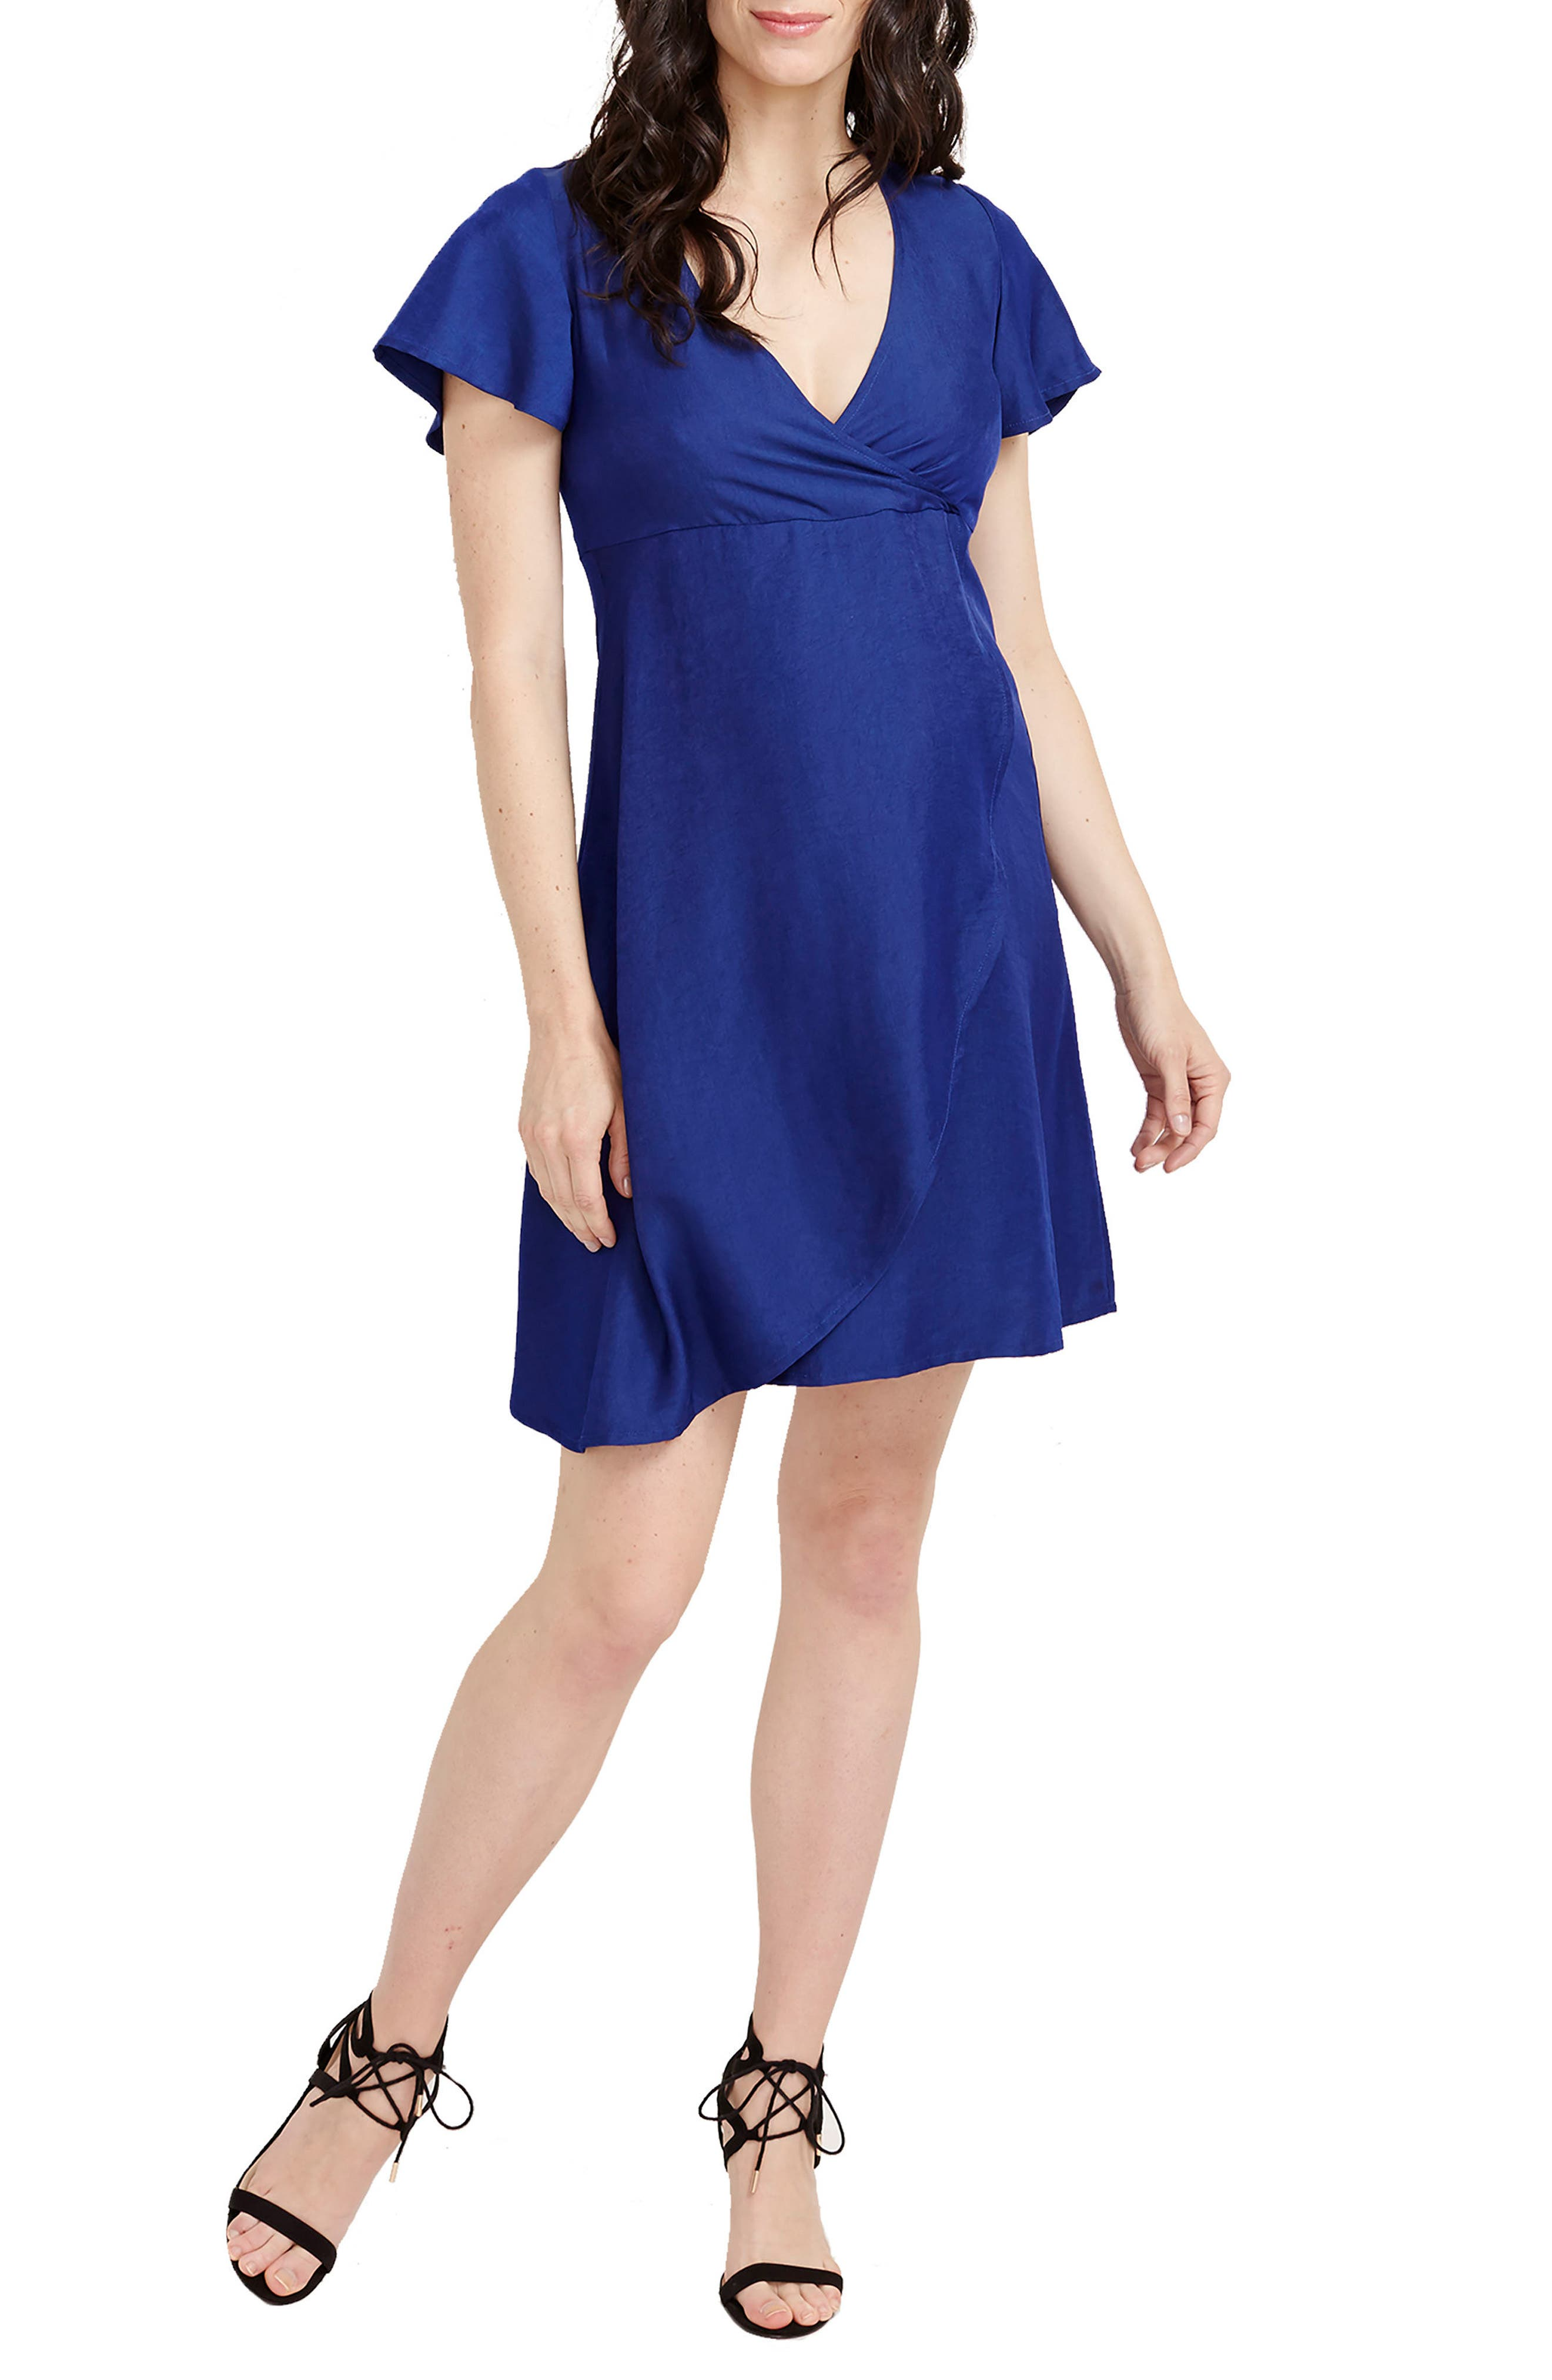 ROSIE POPE Grace Maternity Dress, Main, color, 410